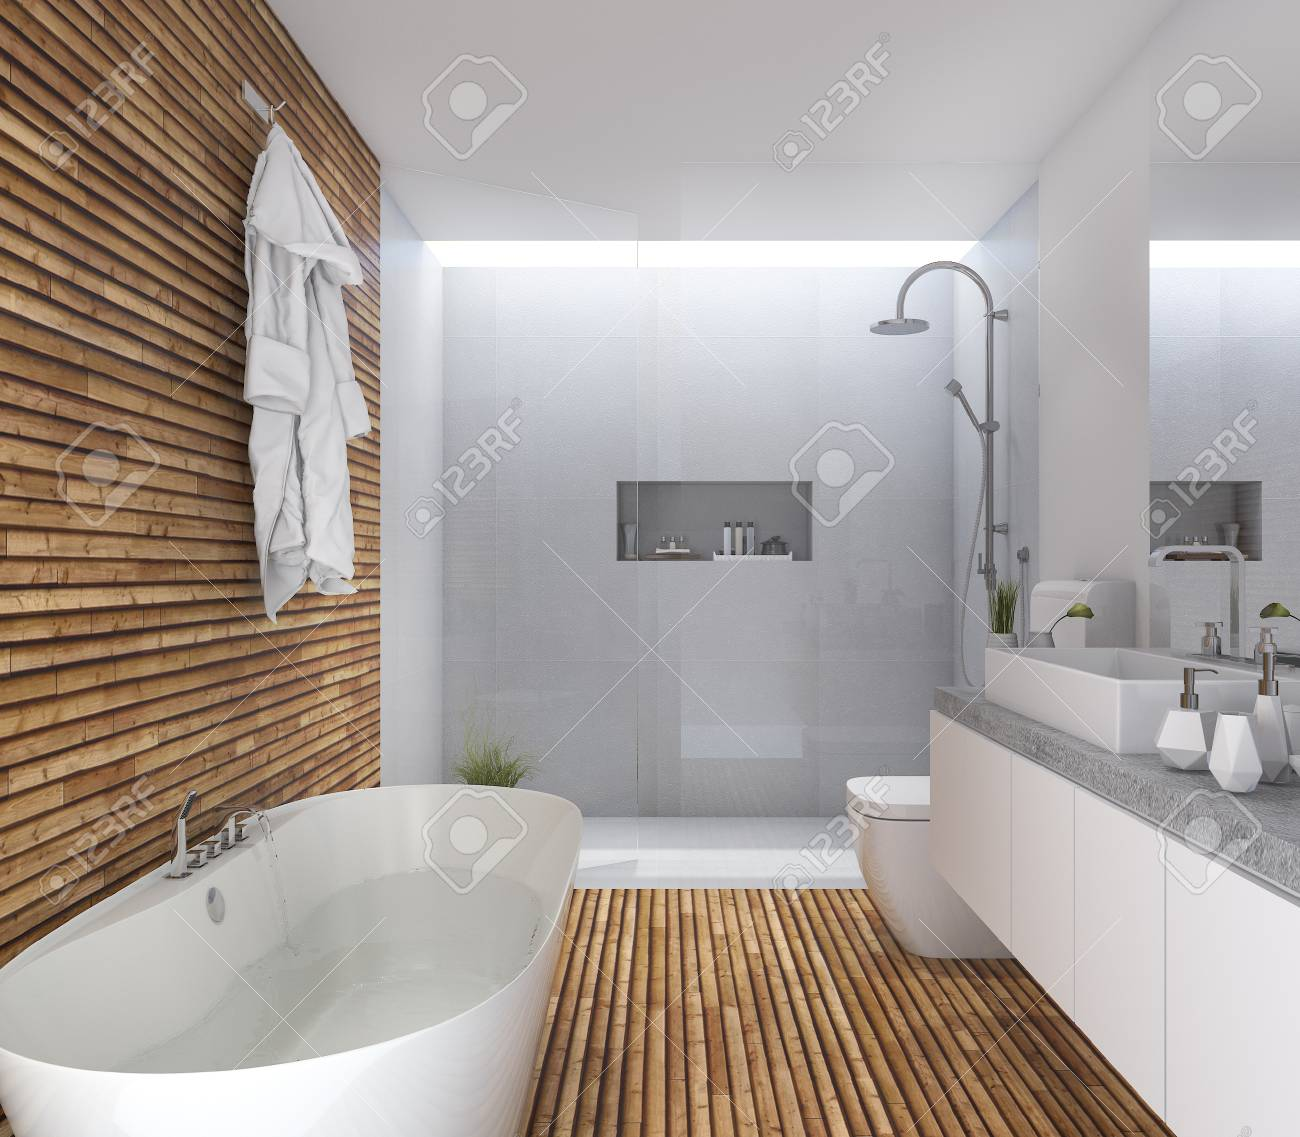 Charmant 3d Rendering Wood Modern Bathroom With Nice Design Stock Photo   69696642